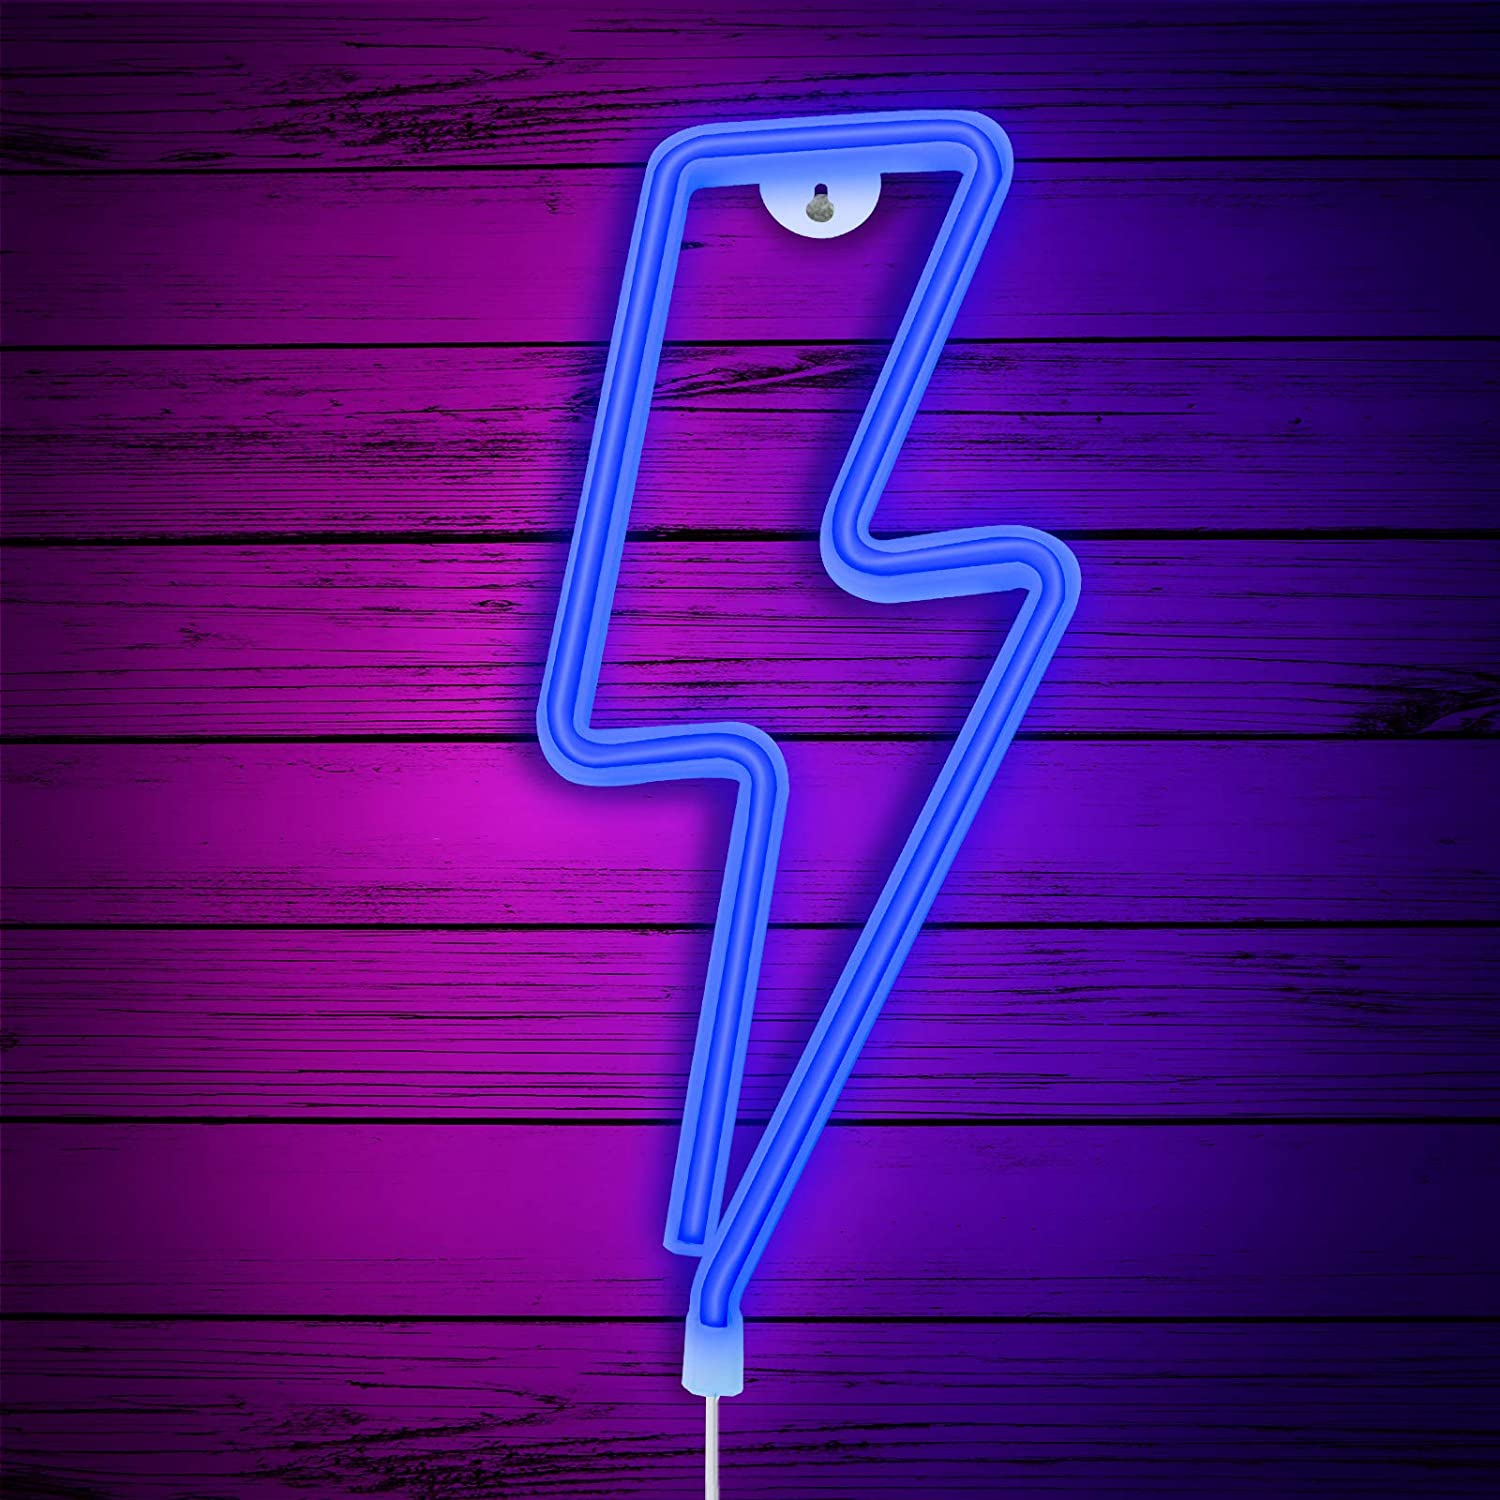 Lightning Bolt Neon Sign, Neon Signs for Wall Decor Bedroom, USB or Battery Decor LED Signs,Light Up Signs Decorative Neon Light Sign for Home,Halloween,Christmas,Party,Kids Living Room (Blue)